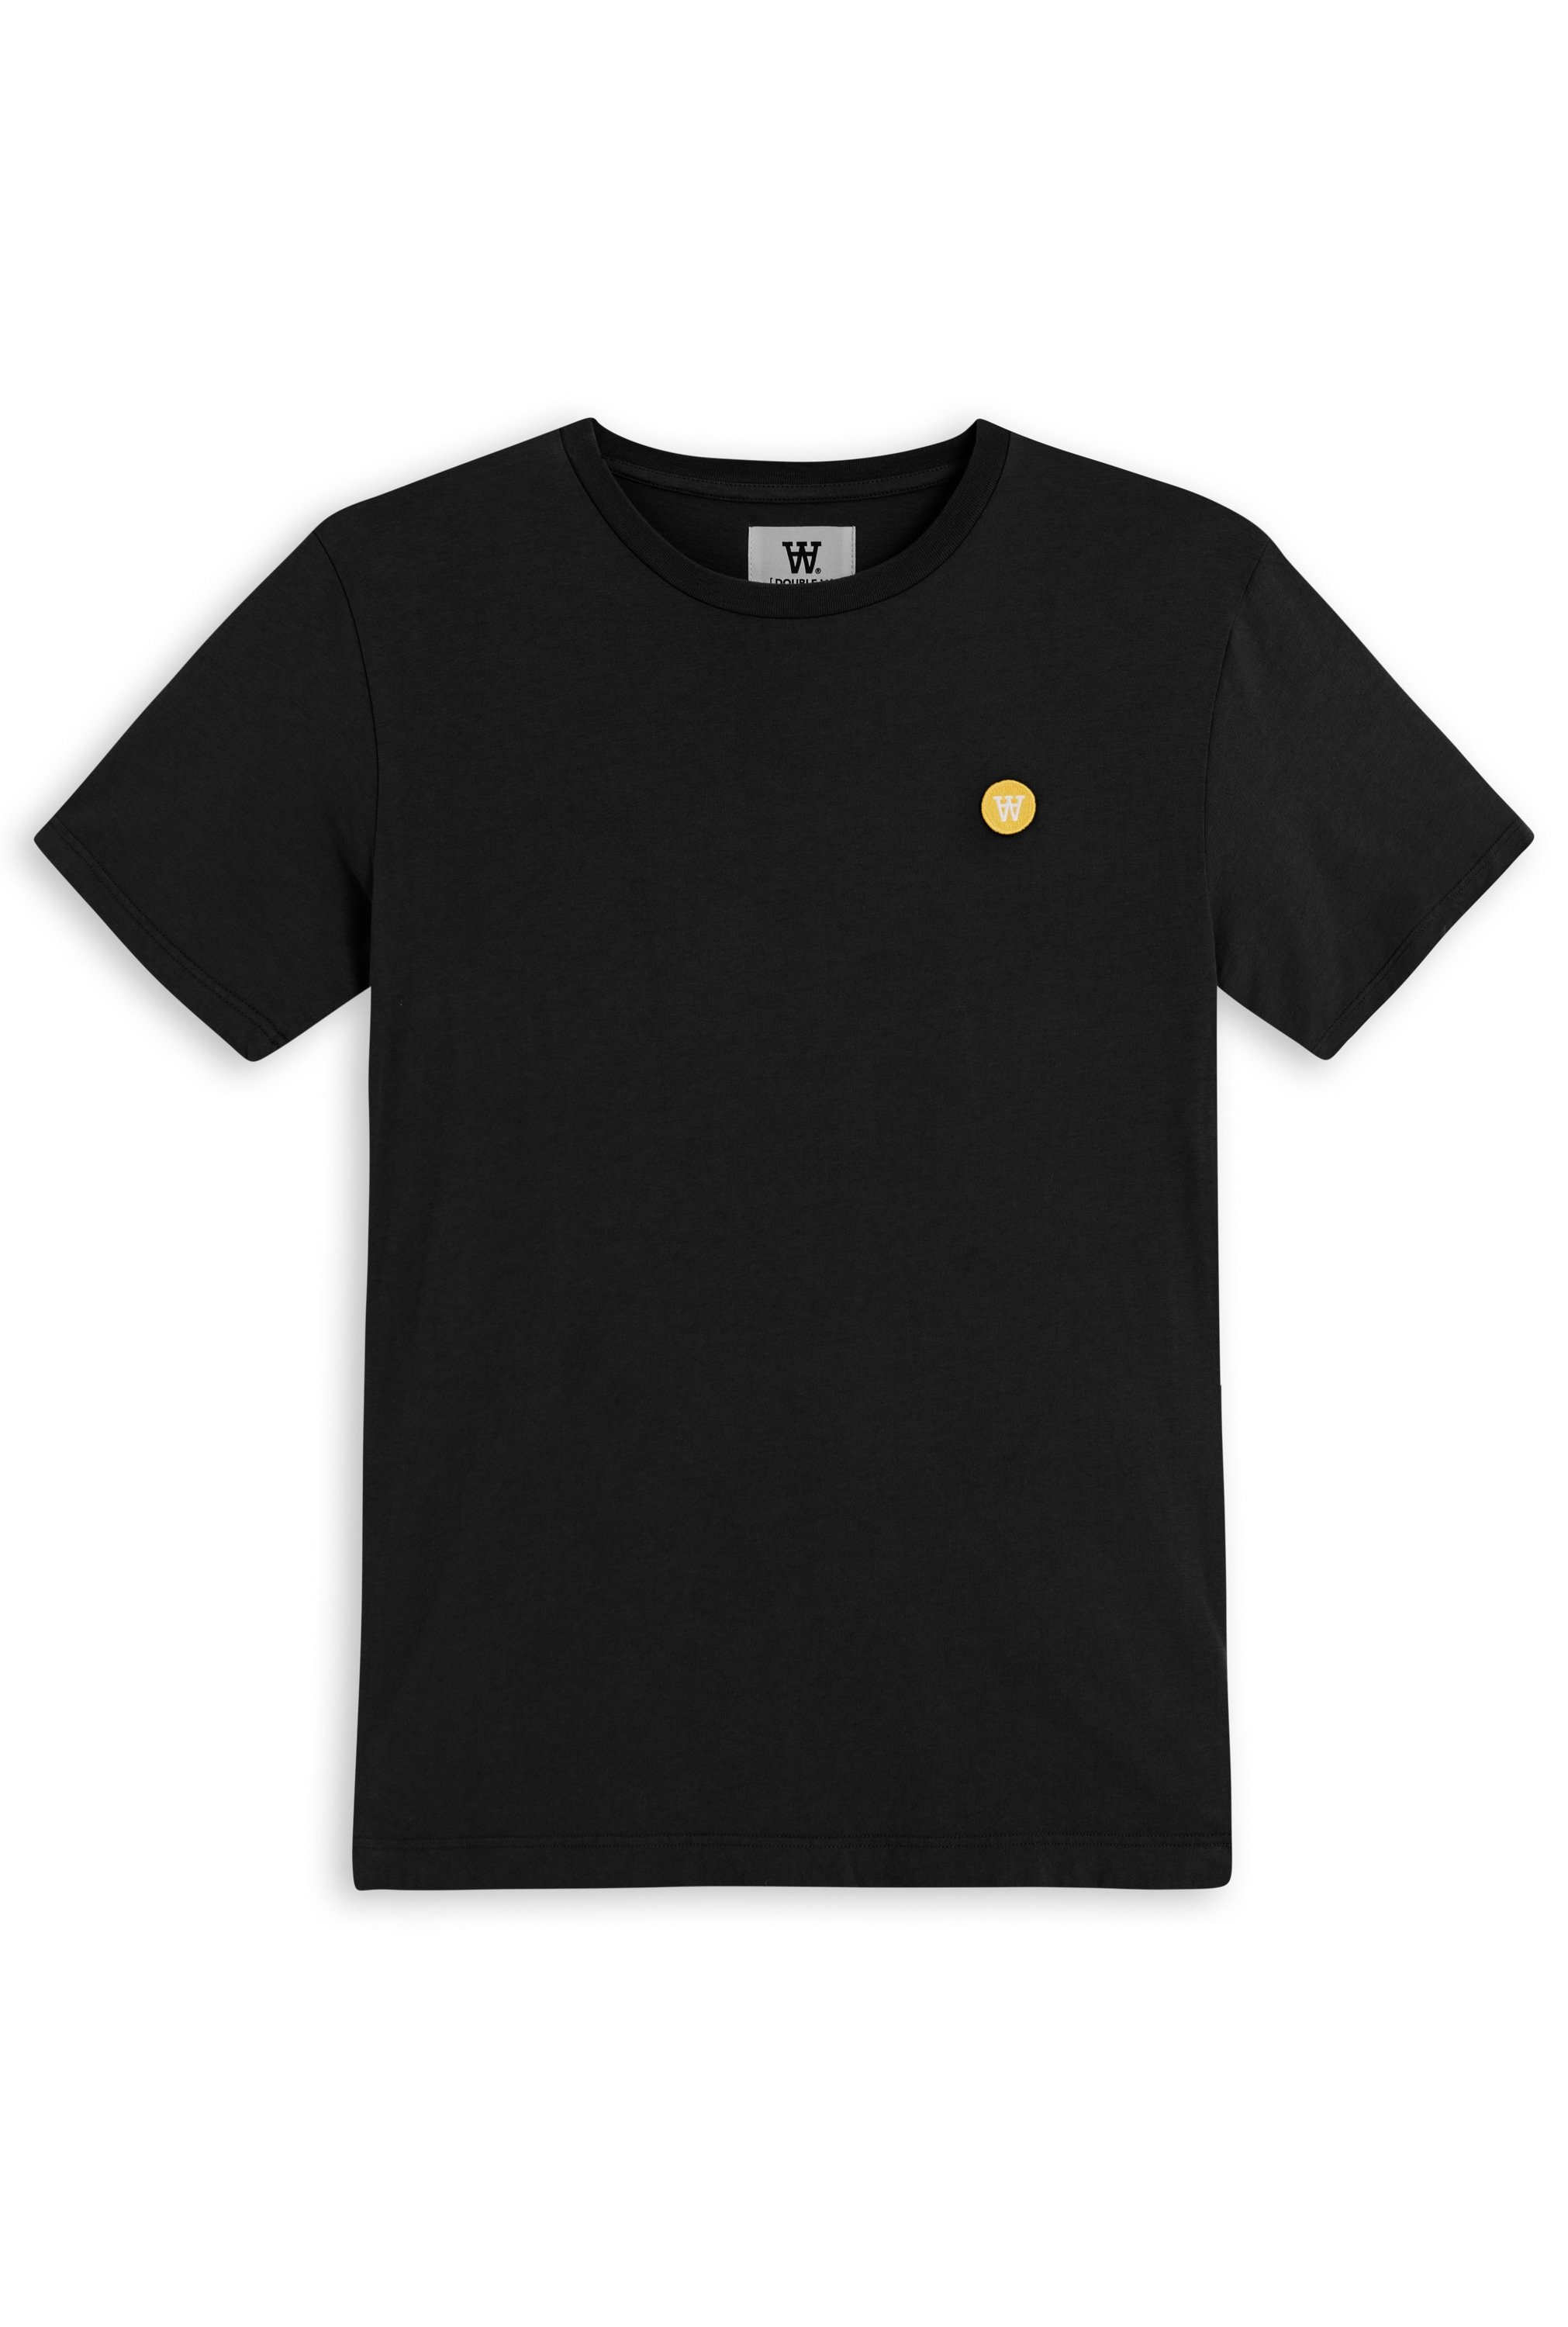 Wood Wood Double A Ace t-shirt, black, small